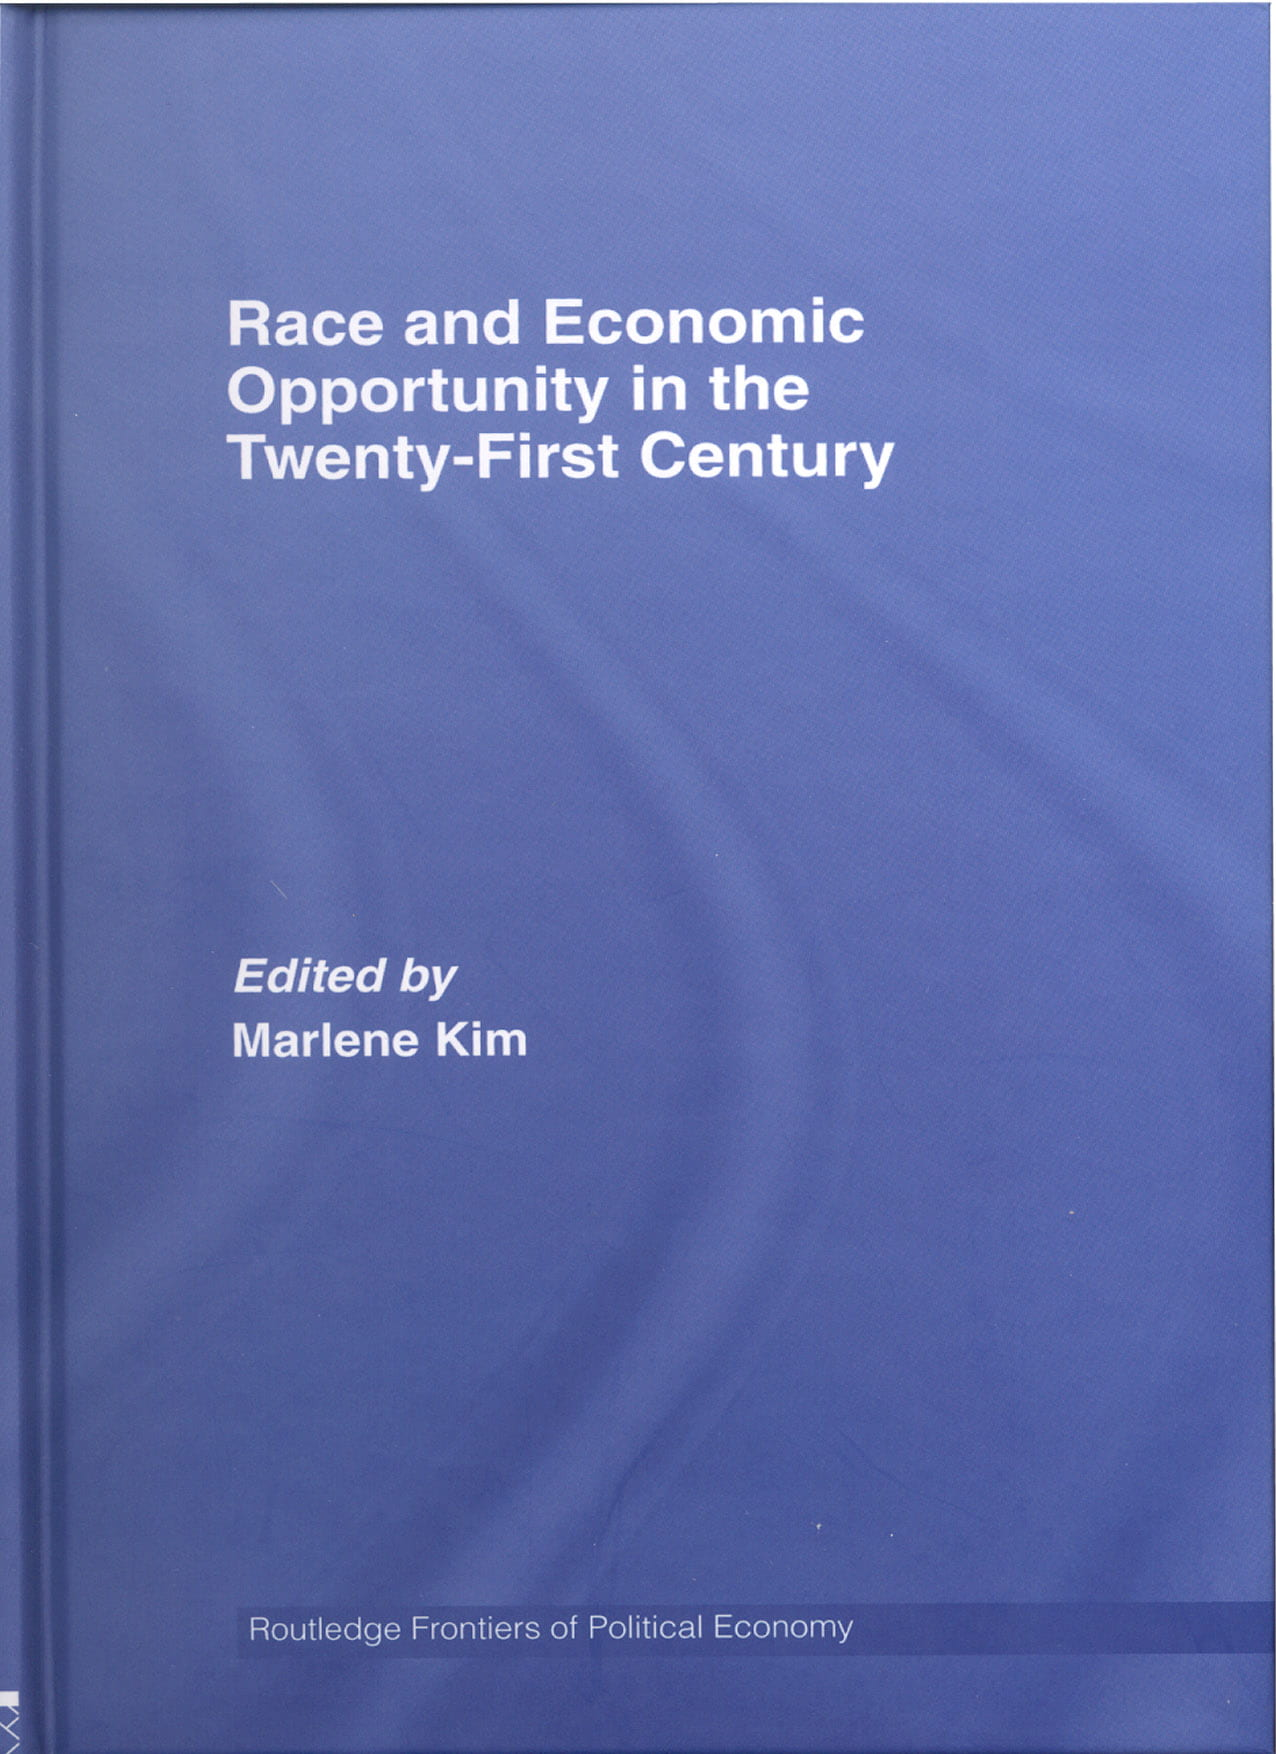 Book Cover_jpg Picture